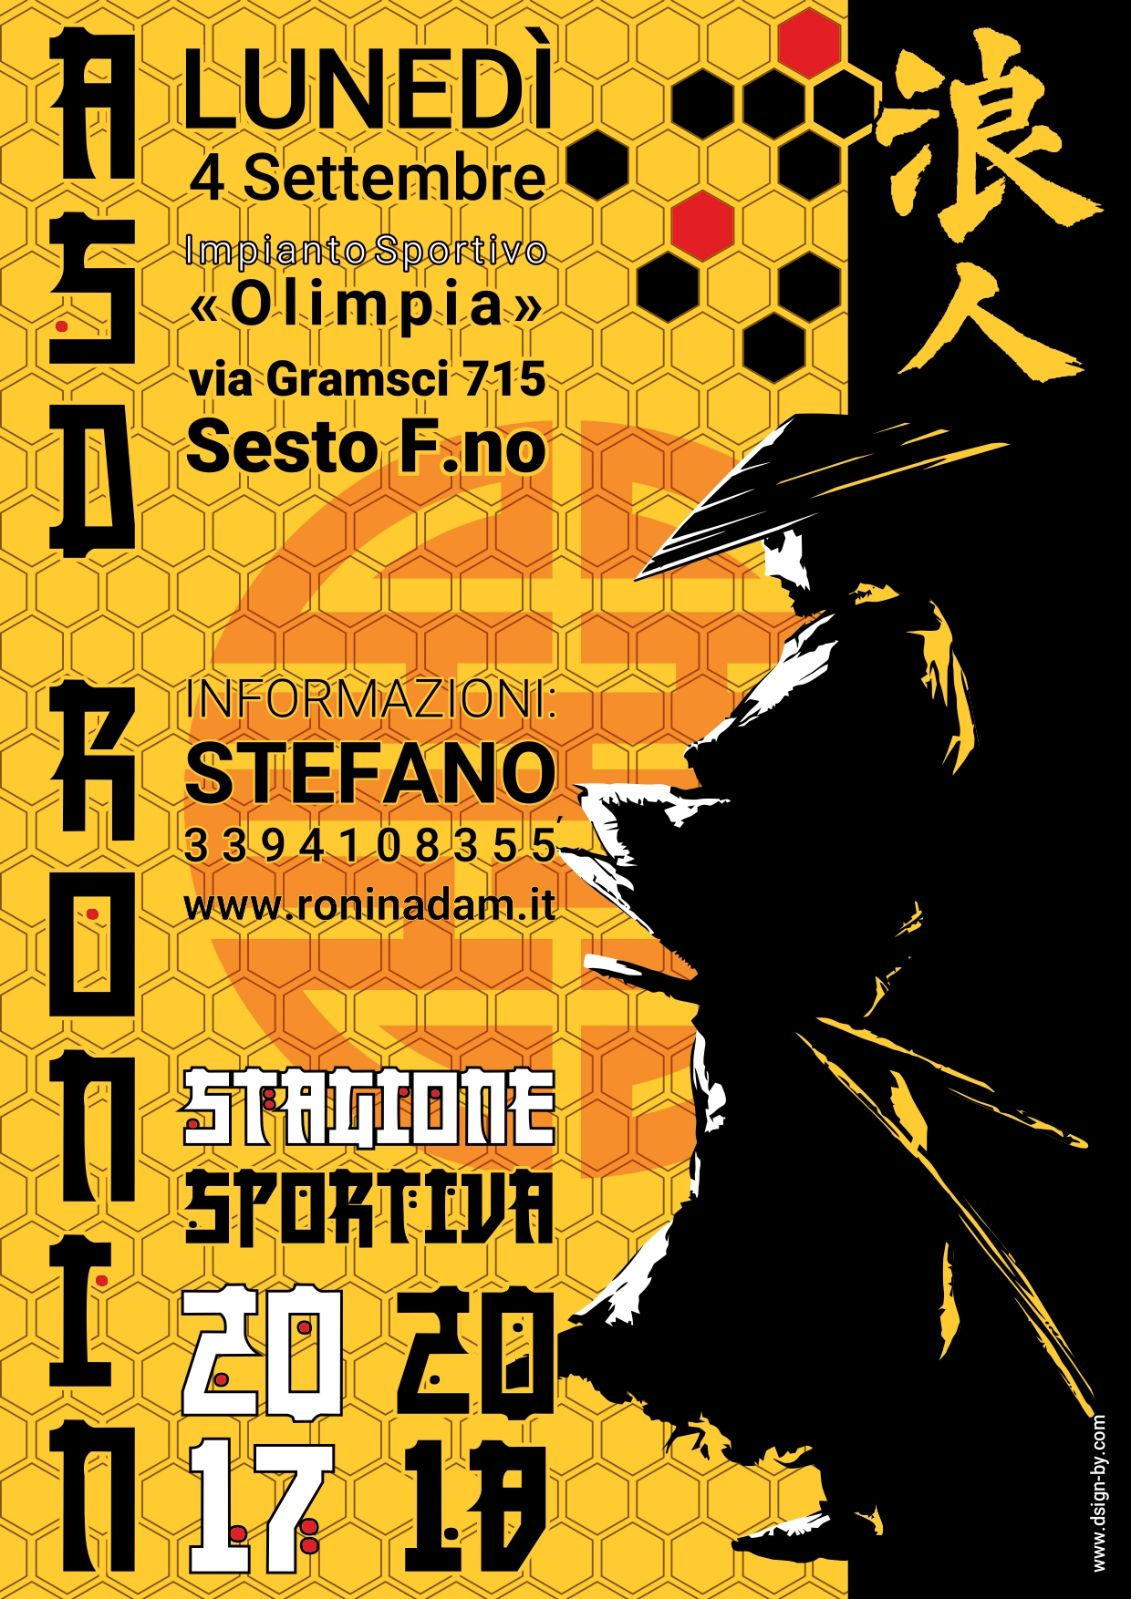 Ronin stagione 17-18